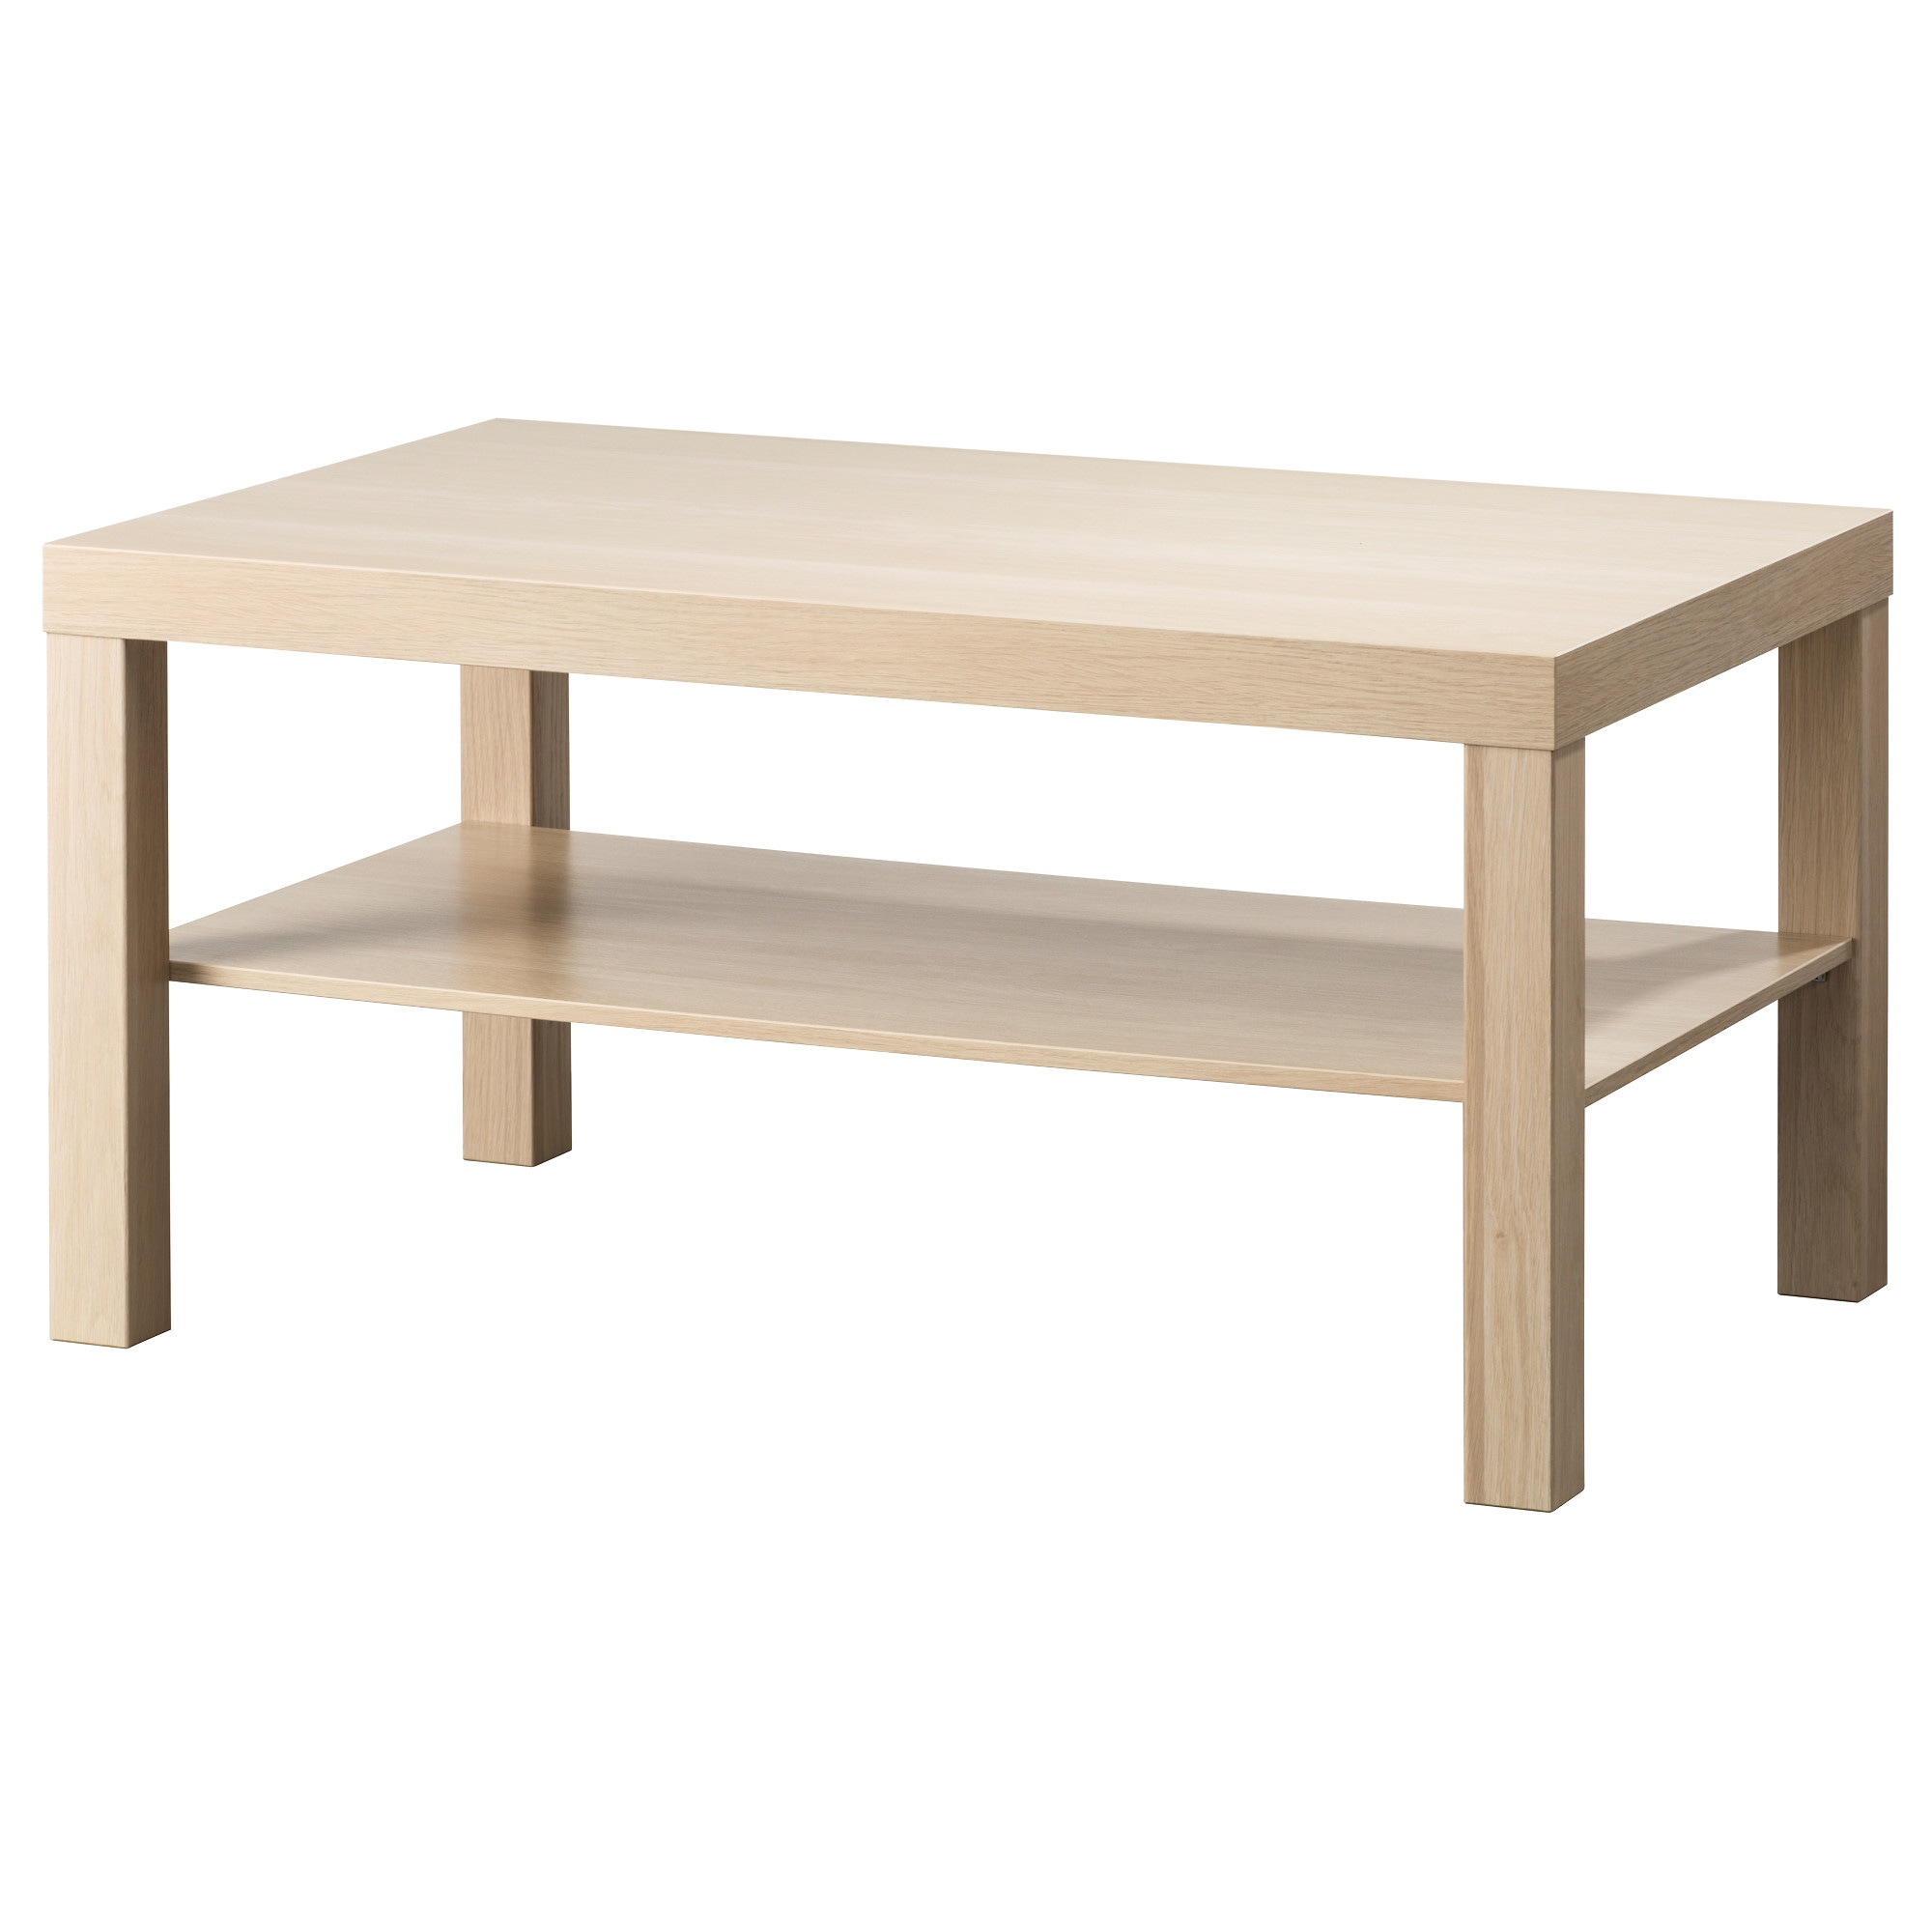 0411538_PE570463_S5 Incroyable De Table Basse Lack Ikea